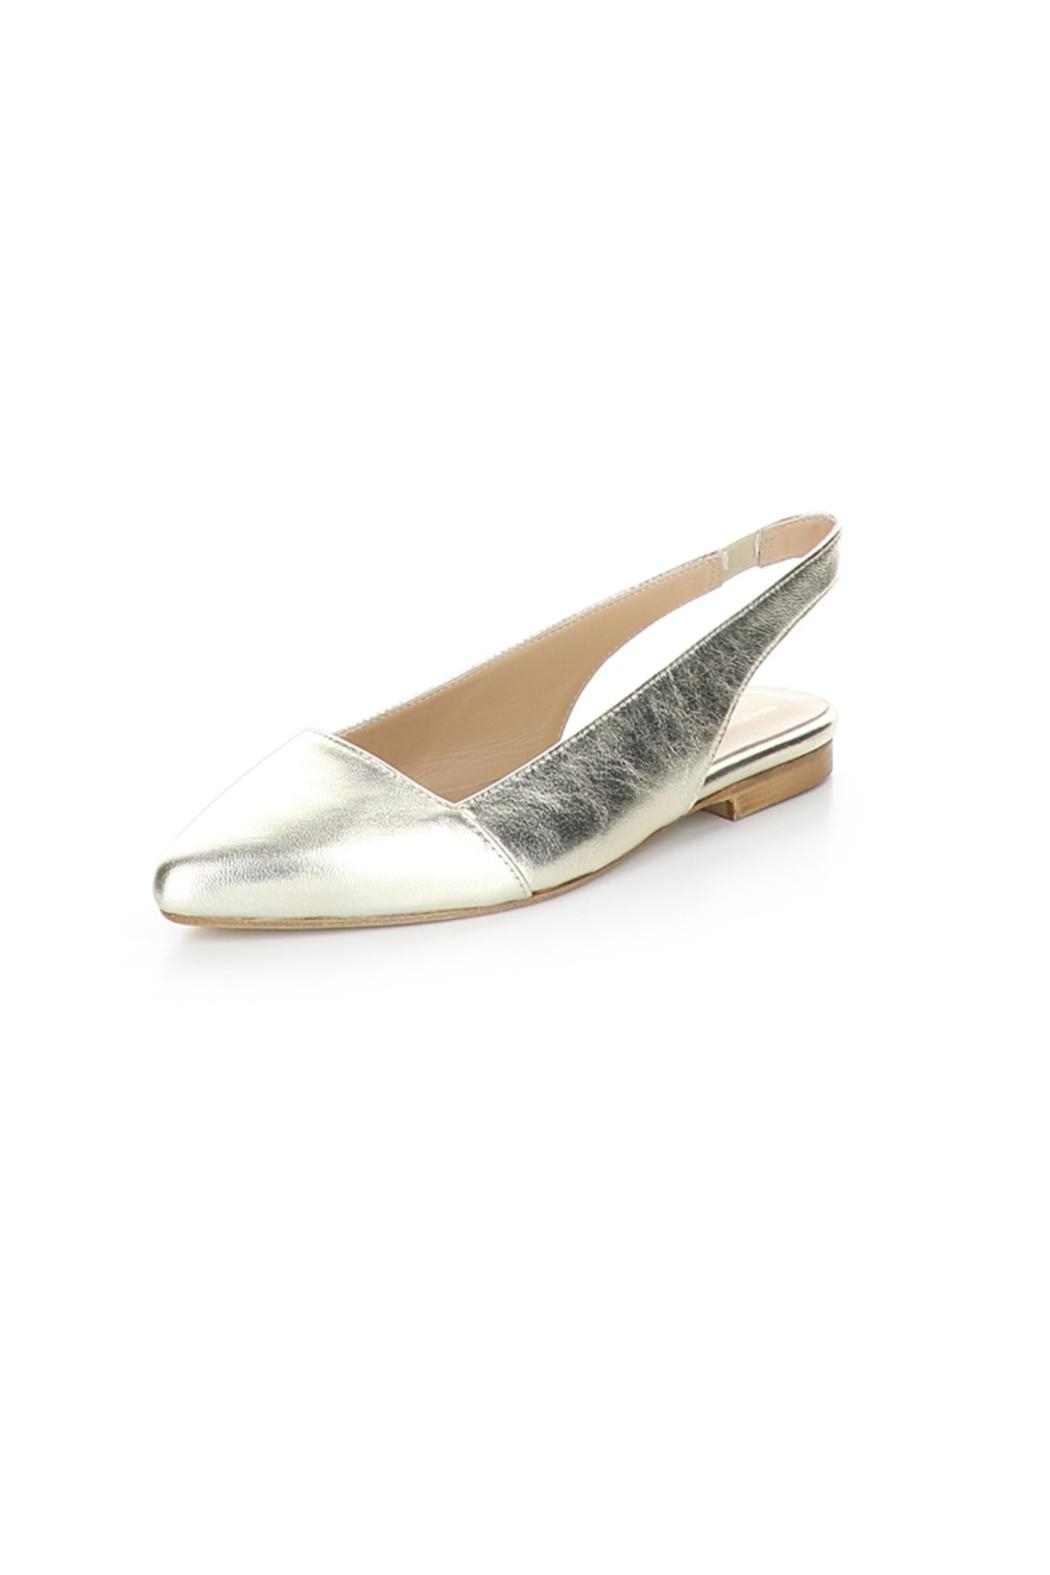 Bos & Co. Gold Filo Leather Slingback Ballet Flat - Main Image